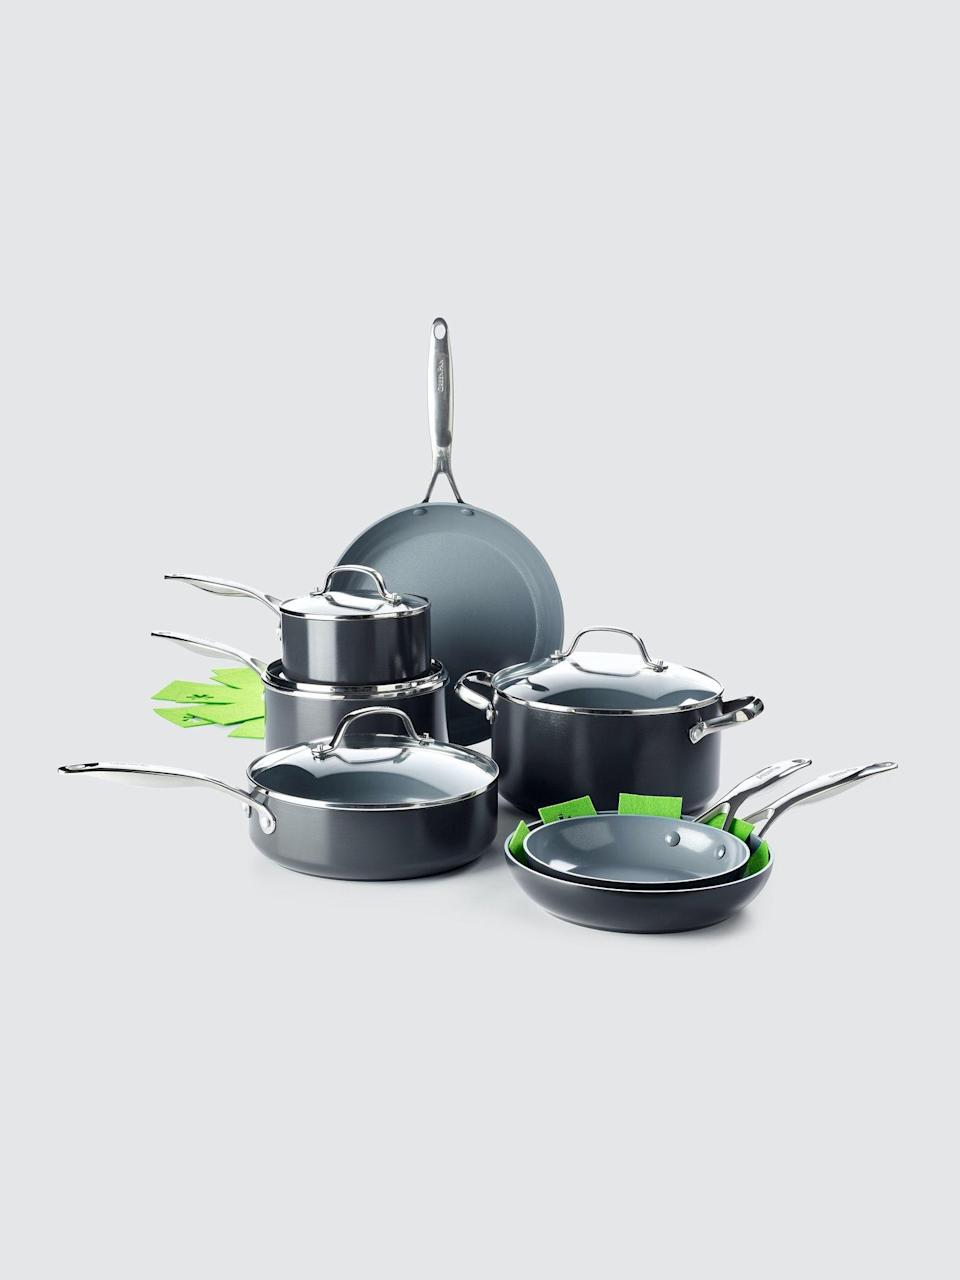 """<p><strong>Greenpan</strong></p><p>verishop.com</p><p><strong>$299.99</strong></p><p><a href=""""https://go.redirectingat.com?id=74968X1596630&url=https%3A%2F%2Fwww.verishop.com%2Fgreenpan%2Fcookware%2Fvalencia-pro-magneto-11-piece-set-with-3-bonus-protectors%2Fp4449542111255%3Fvariant_id%3D31538941919255&sref=https%3A%2F%2Fwww.menshealth.com%2Ftechnology-gear%2Fg35237975%2Flong-distance-relationship-gifts%2F"""" rel=""""nofollow noopener"""" target=""""_blank"""" data-ylk=""""slk:Shop Now"""" class=""""link rapid-noclick-resp"""">Shop Now</a></p><p>Cooking together via Facetime is highly underrated. Gift your partner a full set of kitchenware to help get the ball rolling. </p>"""